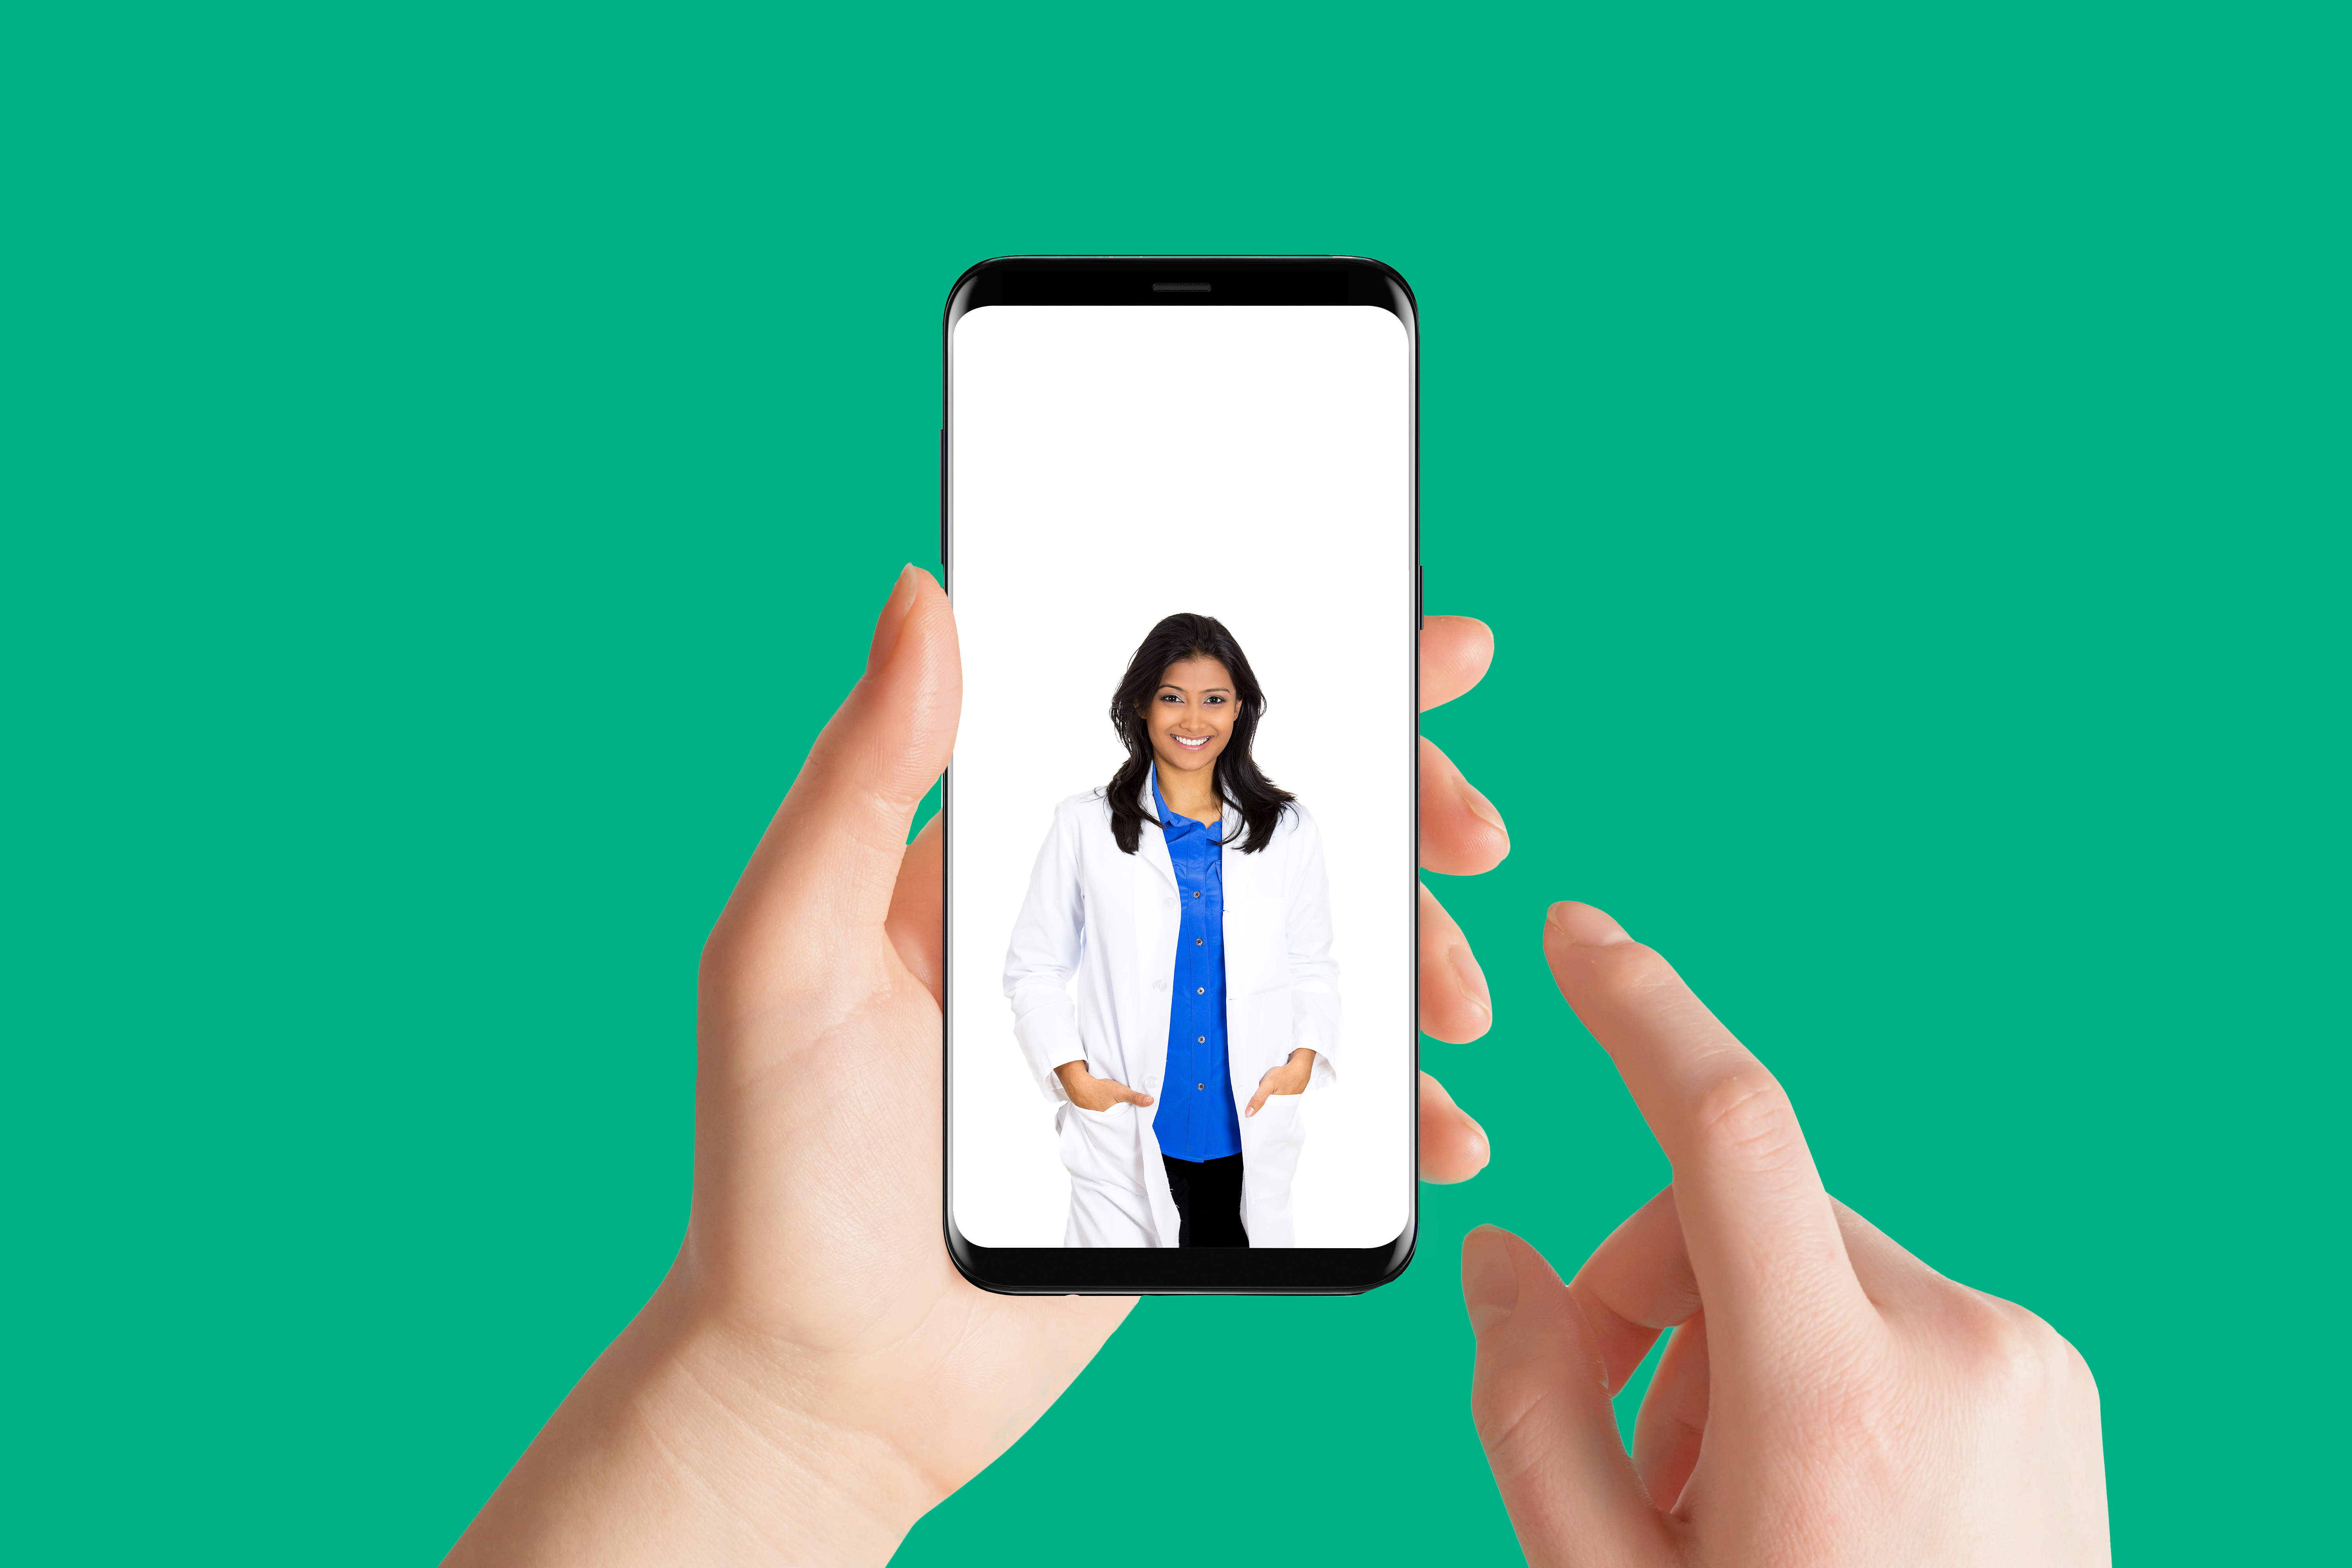 w doctor phone for telemed on green background